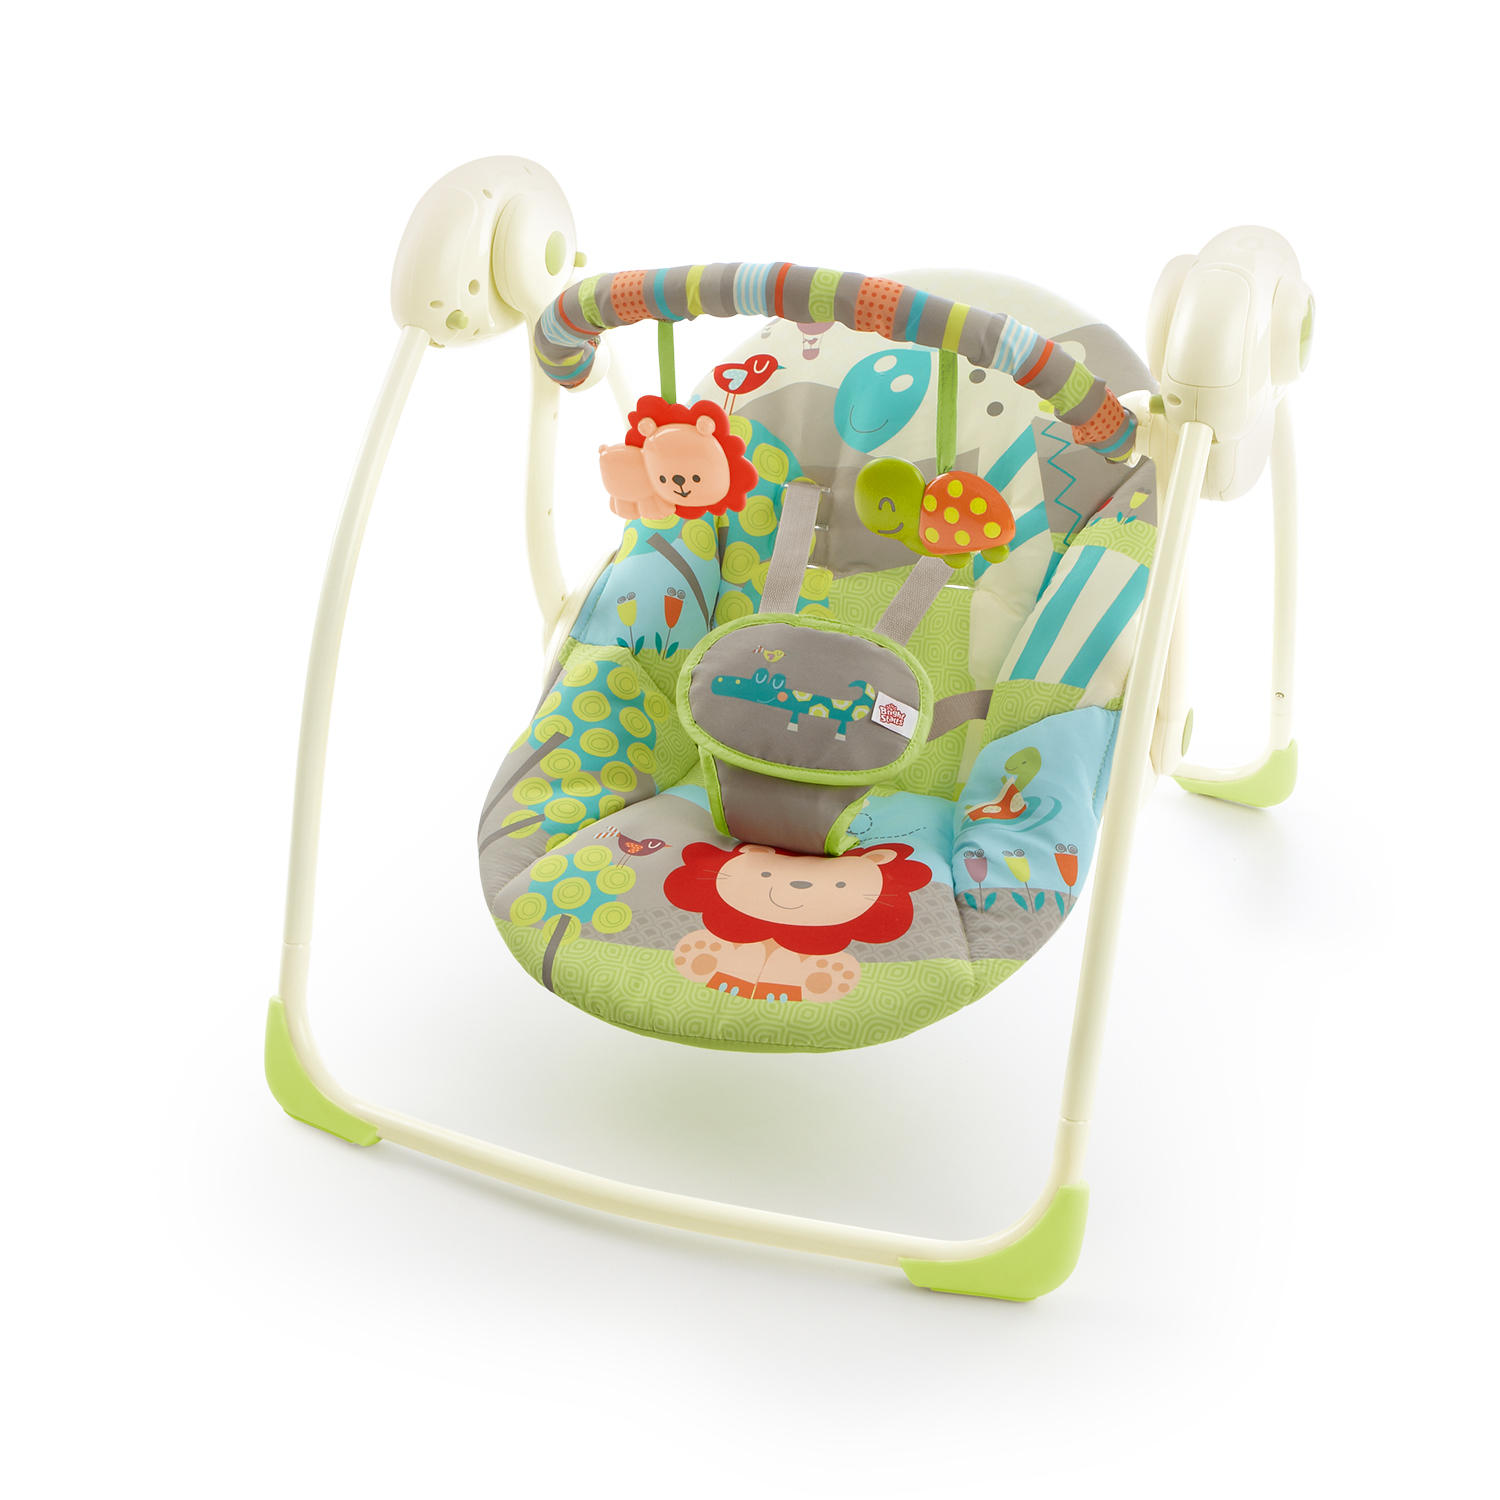 Bright Starts Portable Swing - Up Up & Away